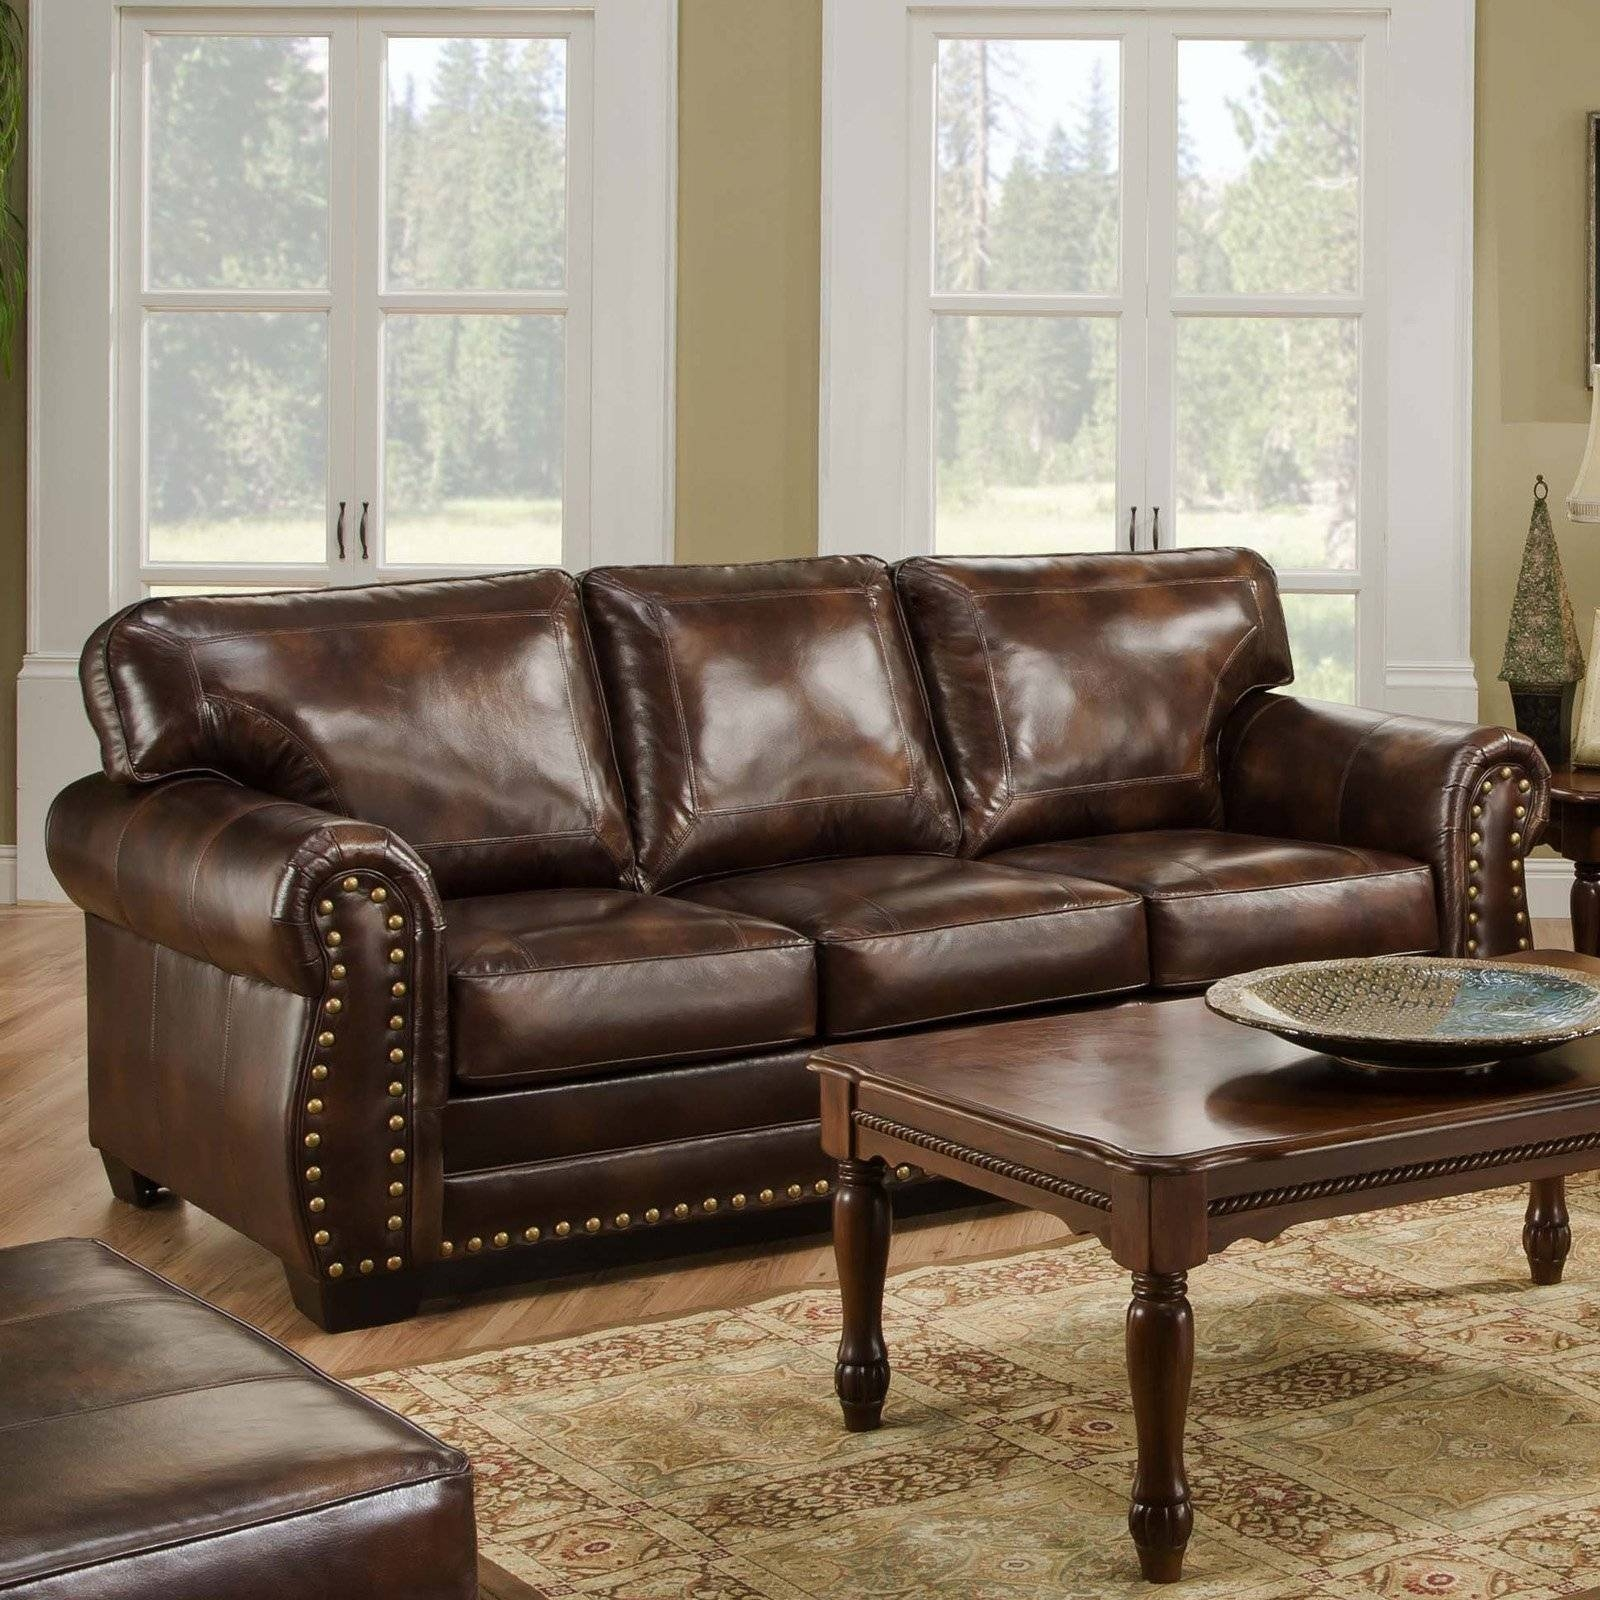 Simmons Vintage Encore Leather Sofa With Nail Heads | Hayneedle intended for Simmons Leather Sofas (Image 15 of 15)